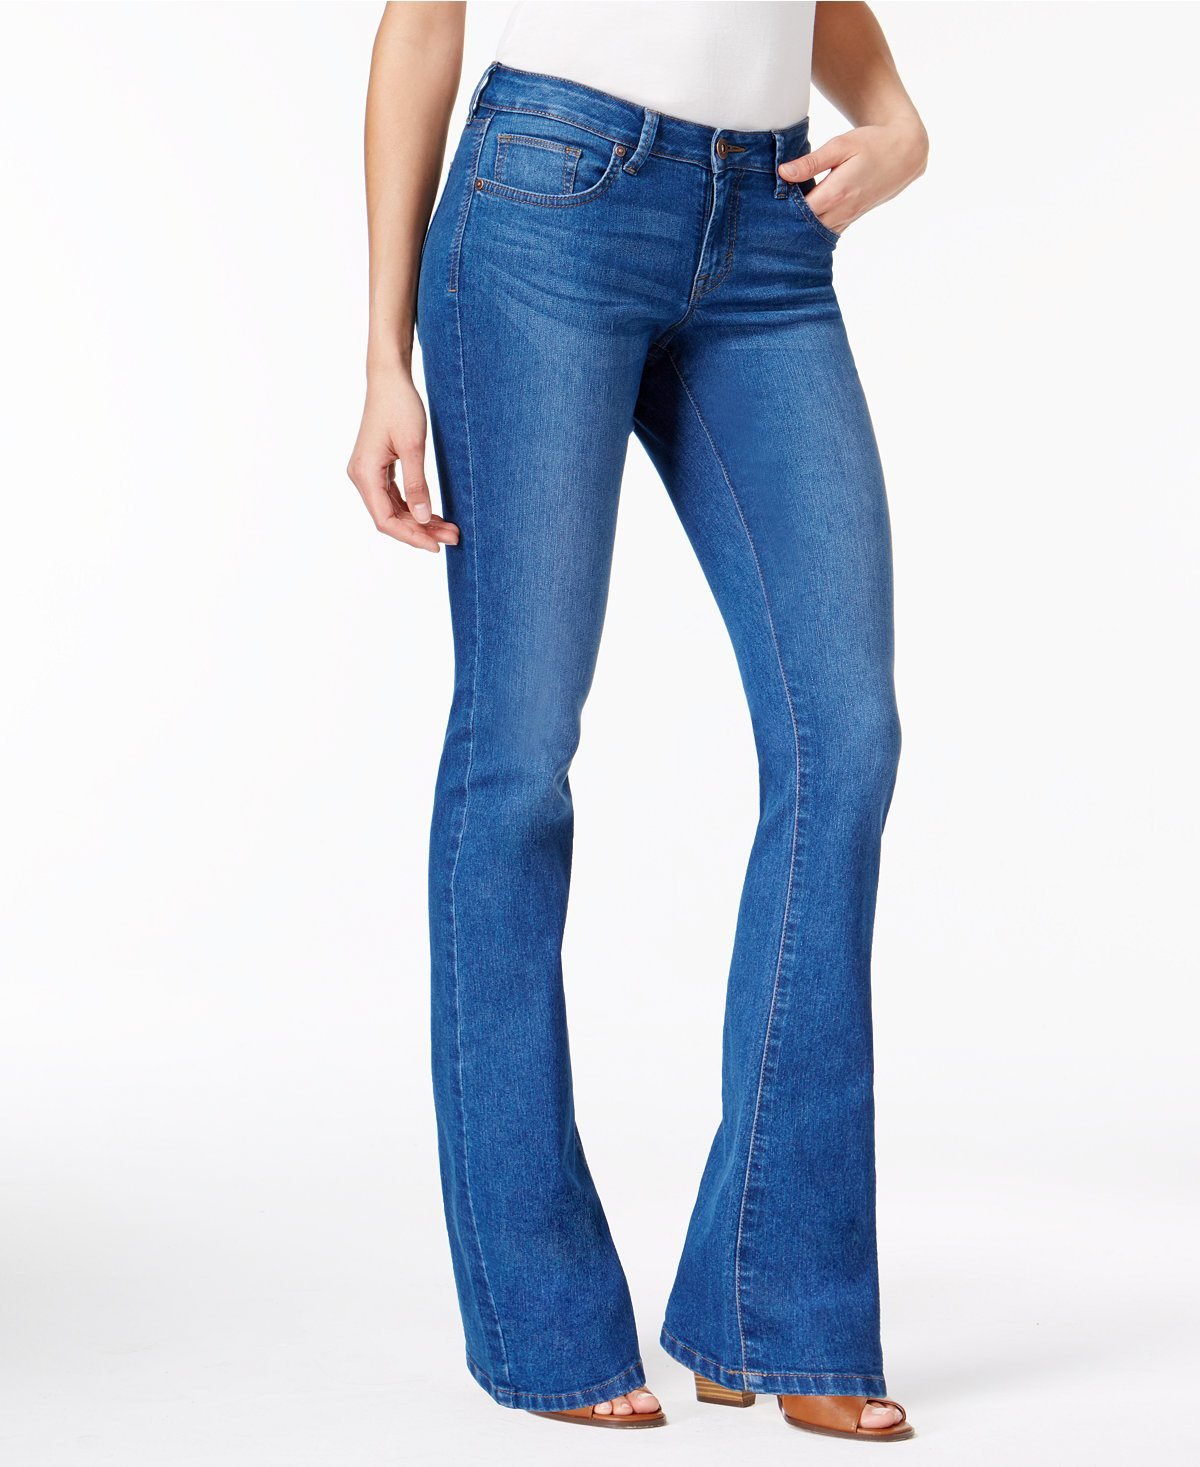 Flatter yourself with these women's Levi's bootcut jeans. Curvy fit through the seat and thigh eases into a bootcut to balance your proportions.